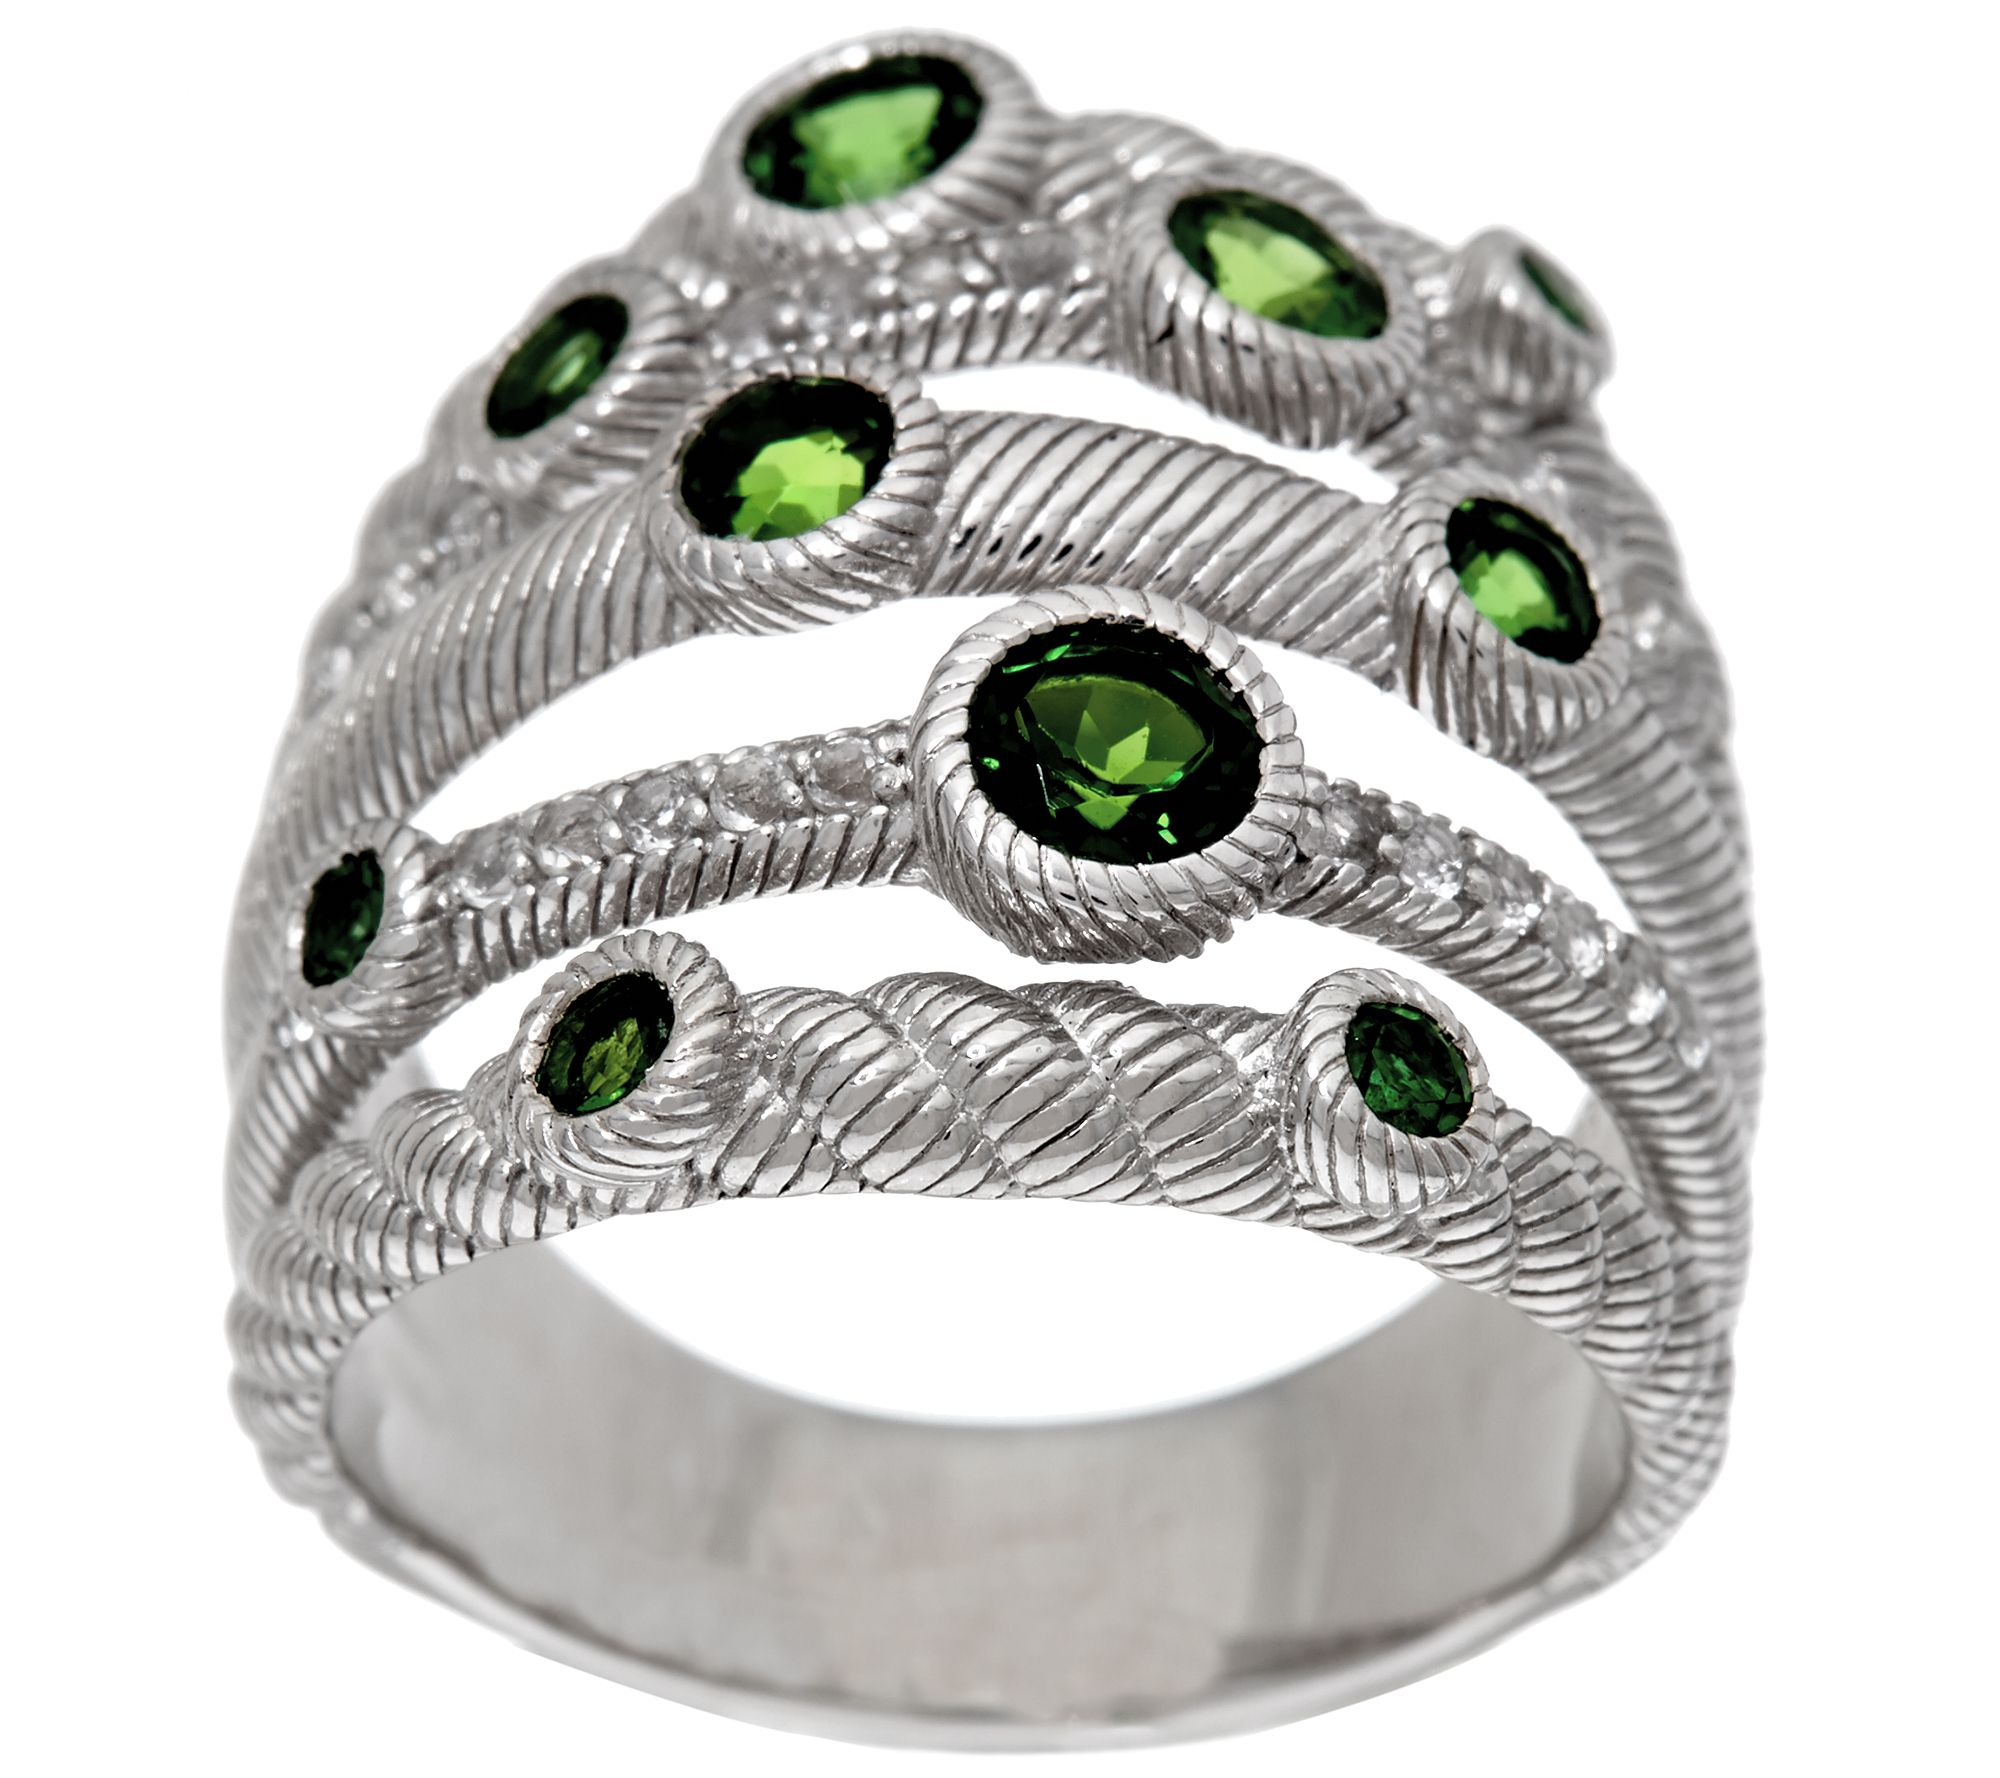 gemstone in tcw overstock orders and watches green round on free peridot gold rings jade naturalist jewelry shipping over palmbeach ring product